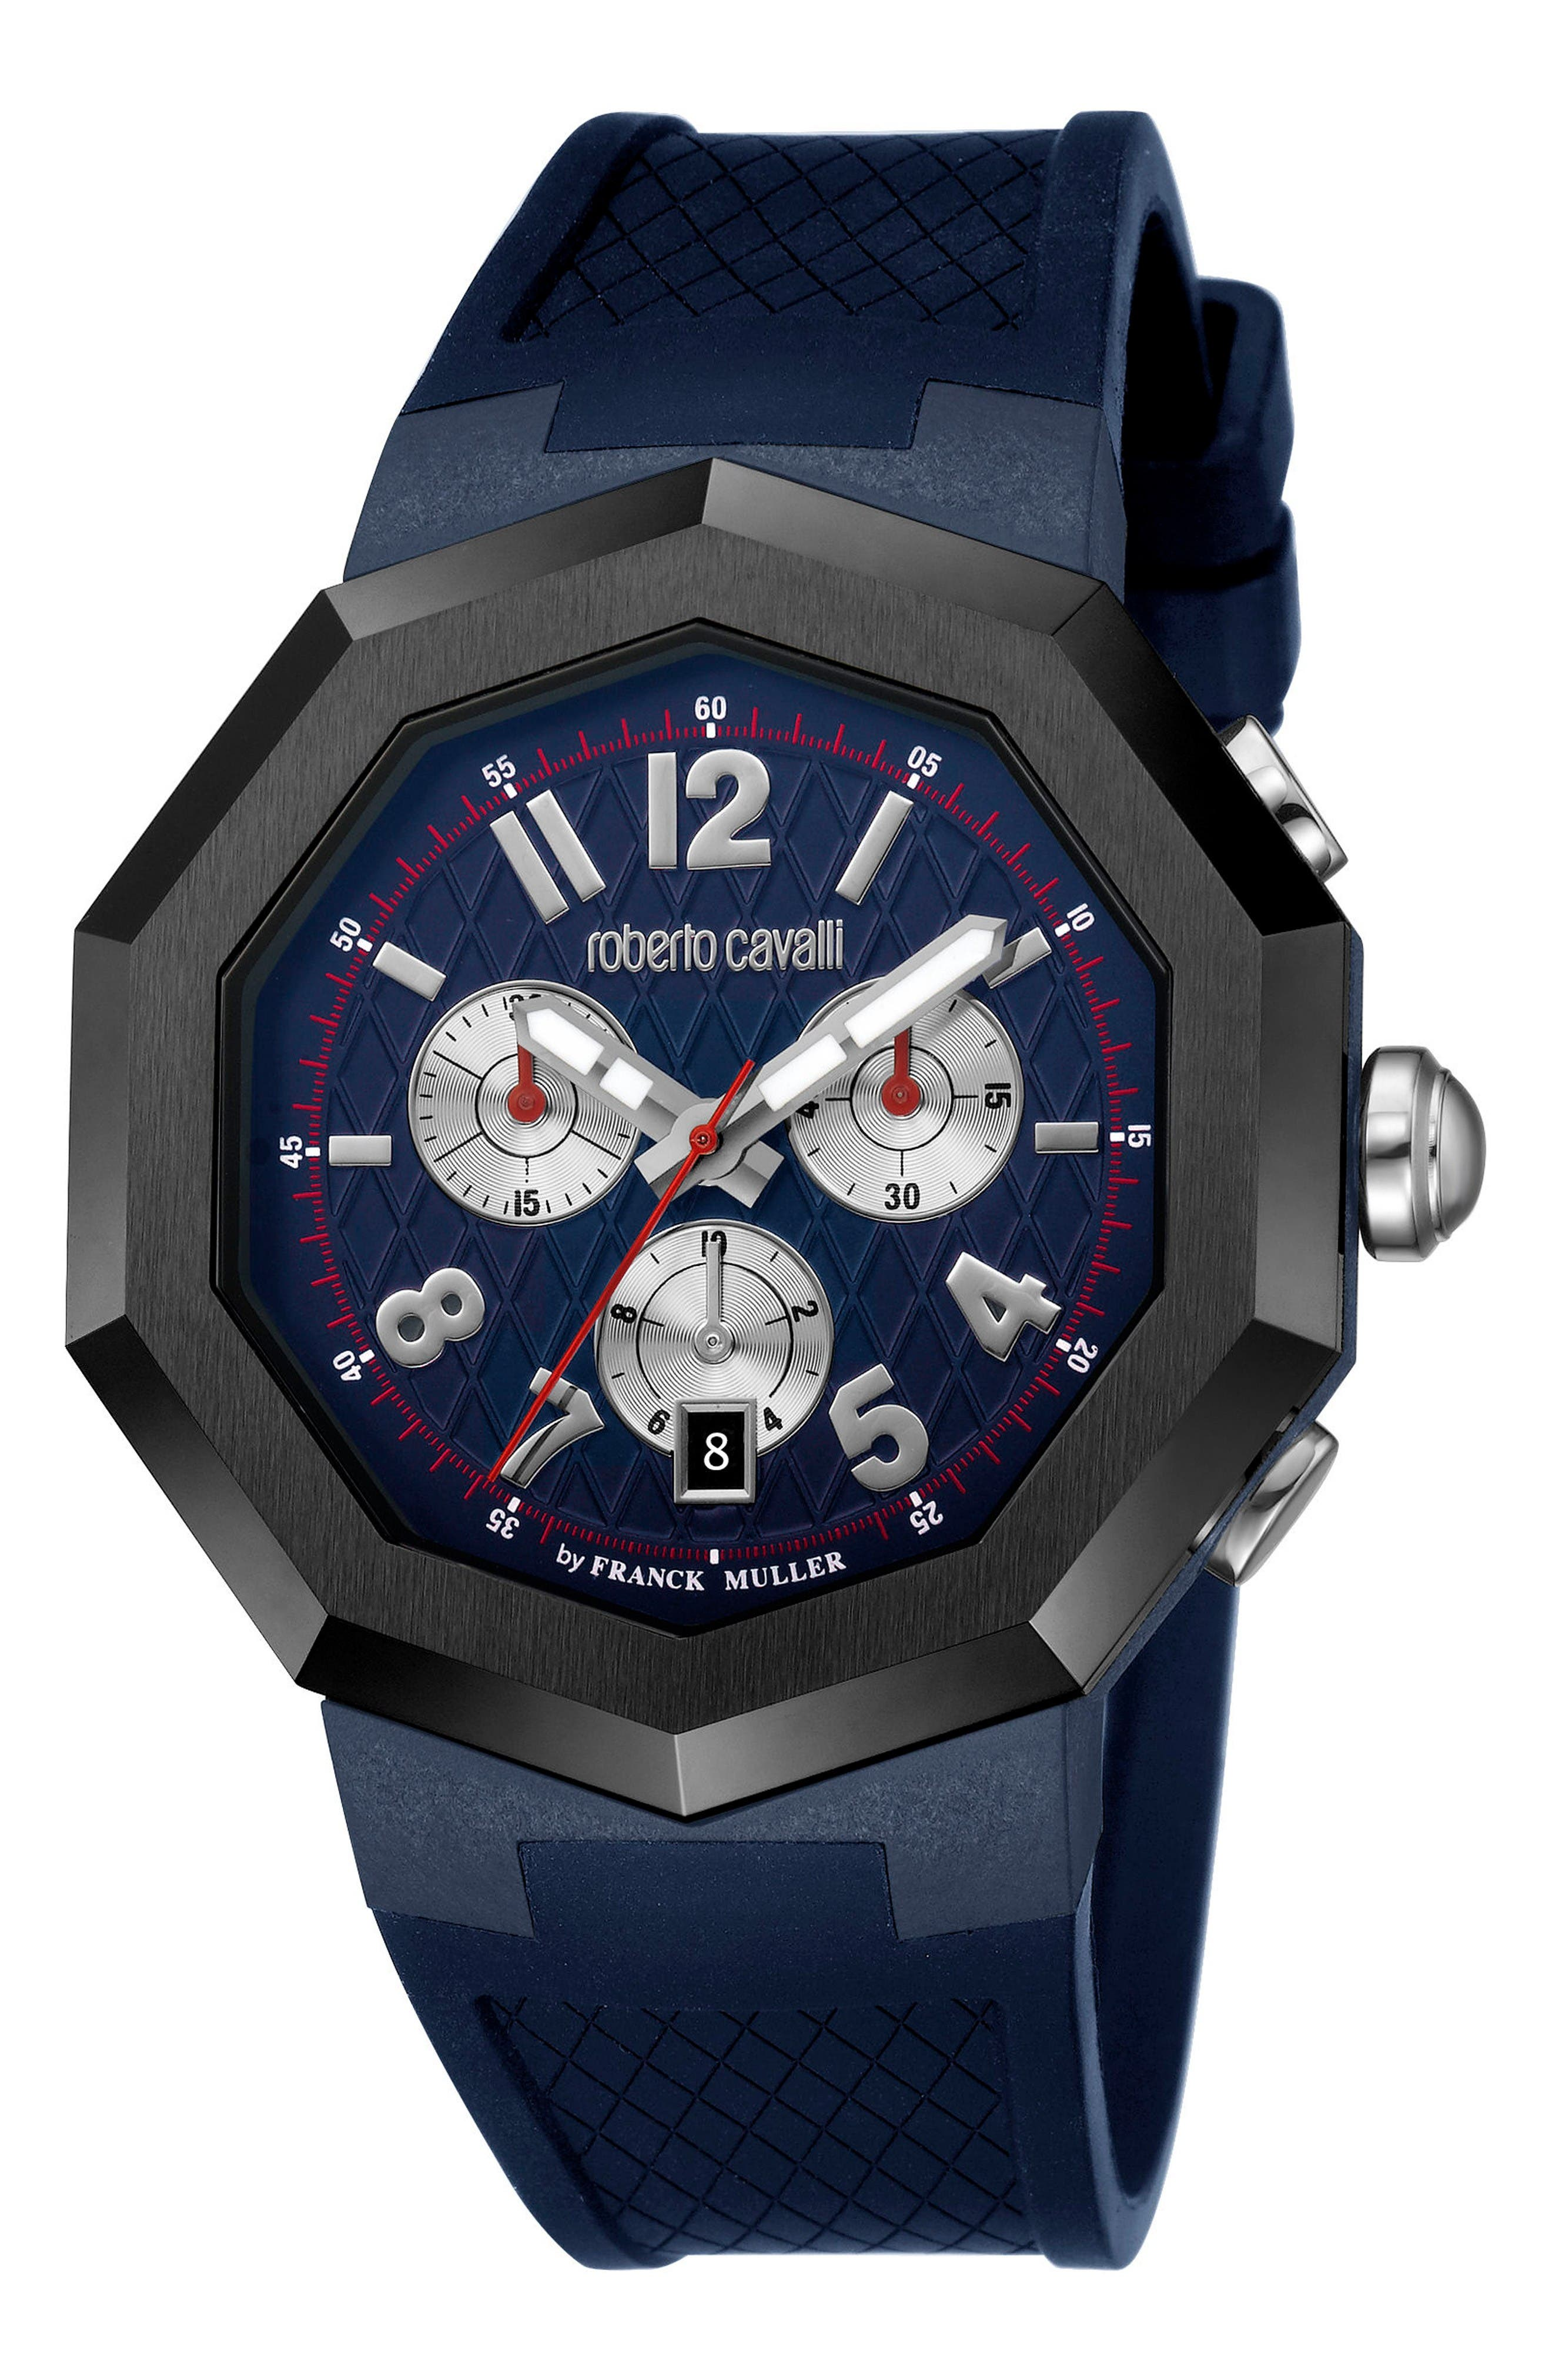 Roberto Cavalli by Franck Muller Chronograph Rubber Strap Watch, 45mm